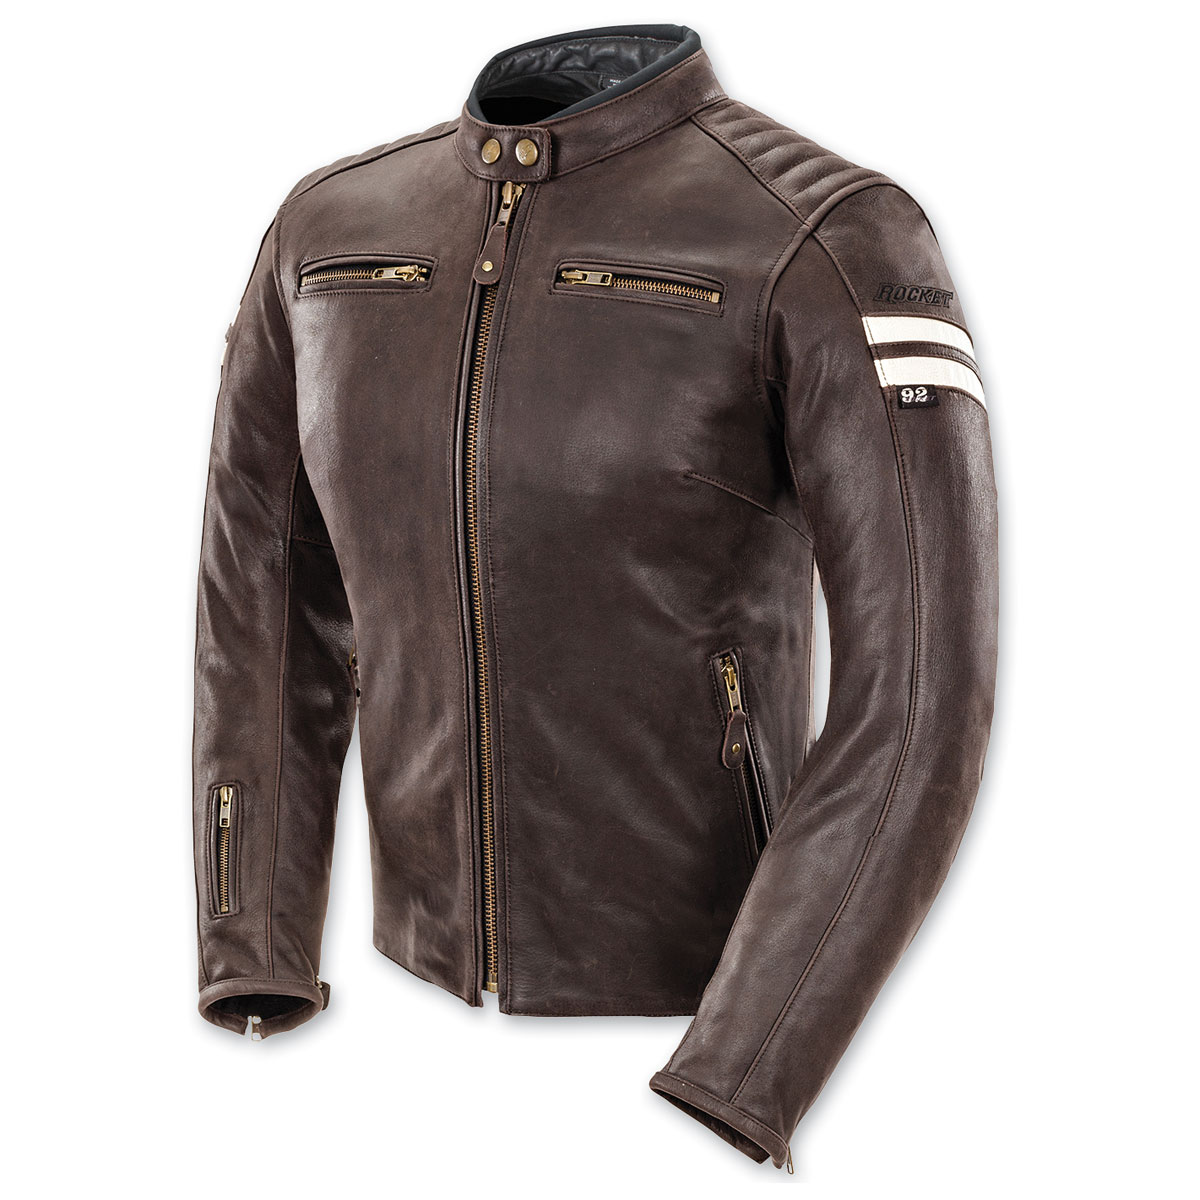 Joe Rocket Women's Classic '92 Brown/Cream Leather Jacket